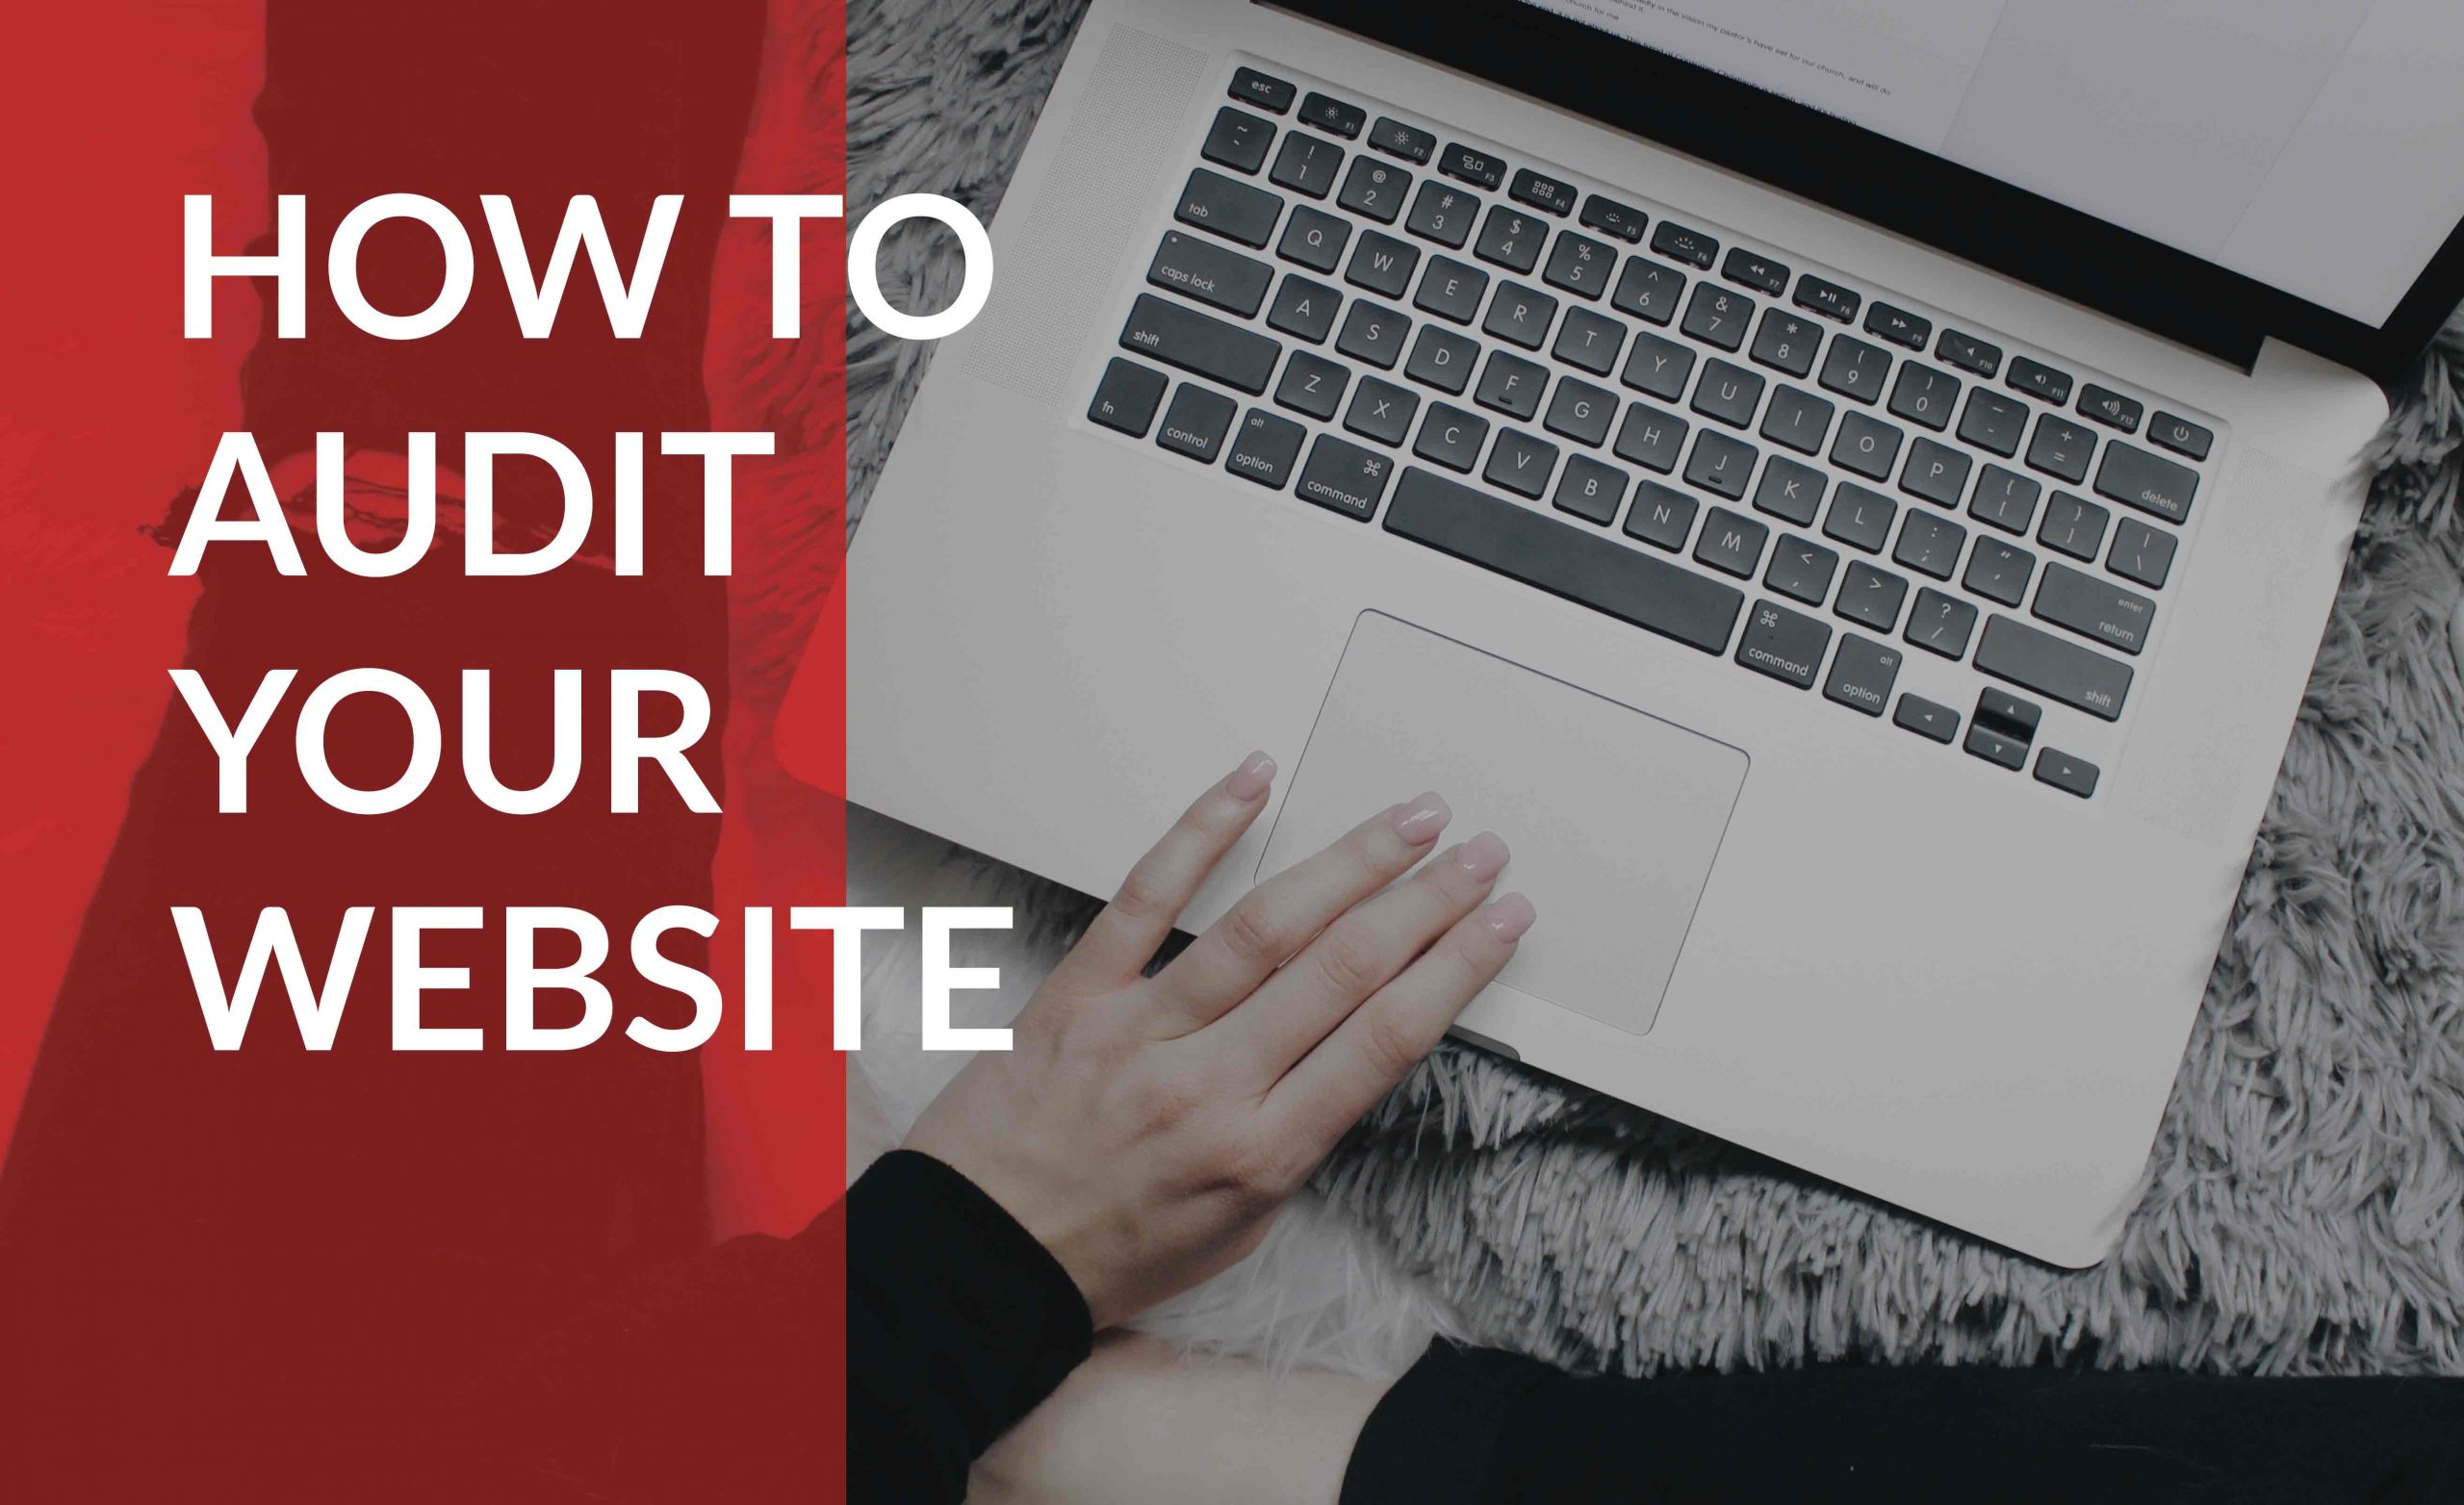 auditing your website for seo, a technical guide